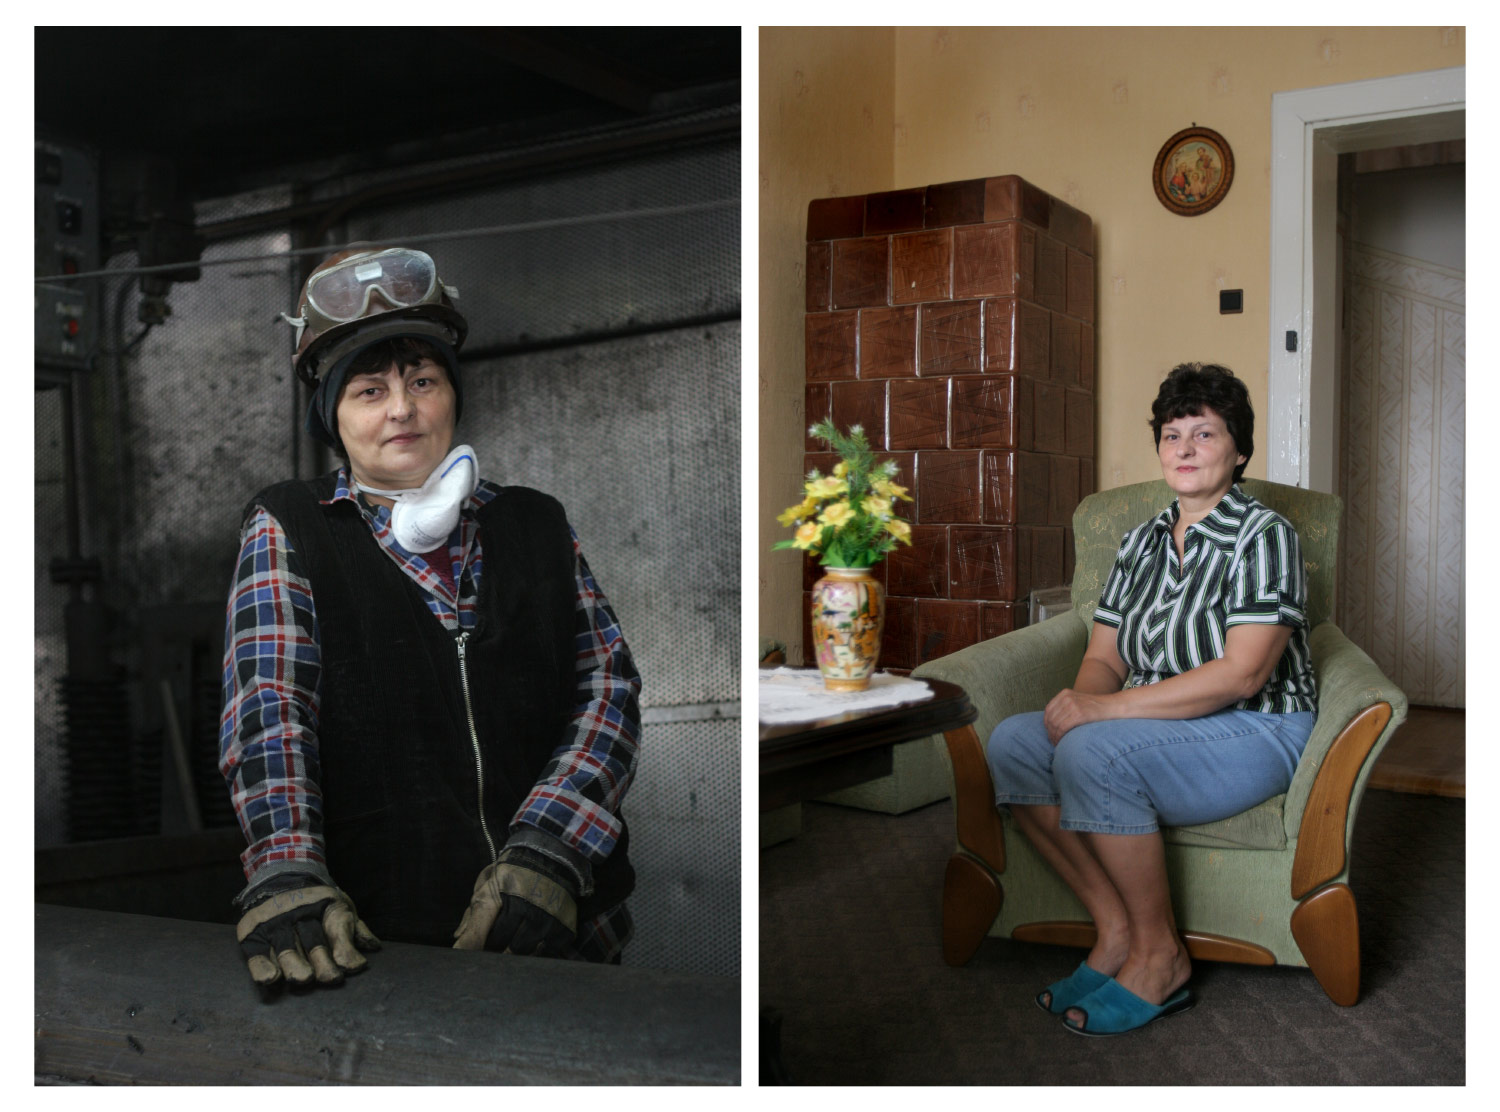 Women miners - Documentary photographer Anna Bedyńska